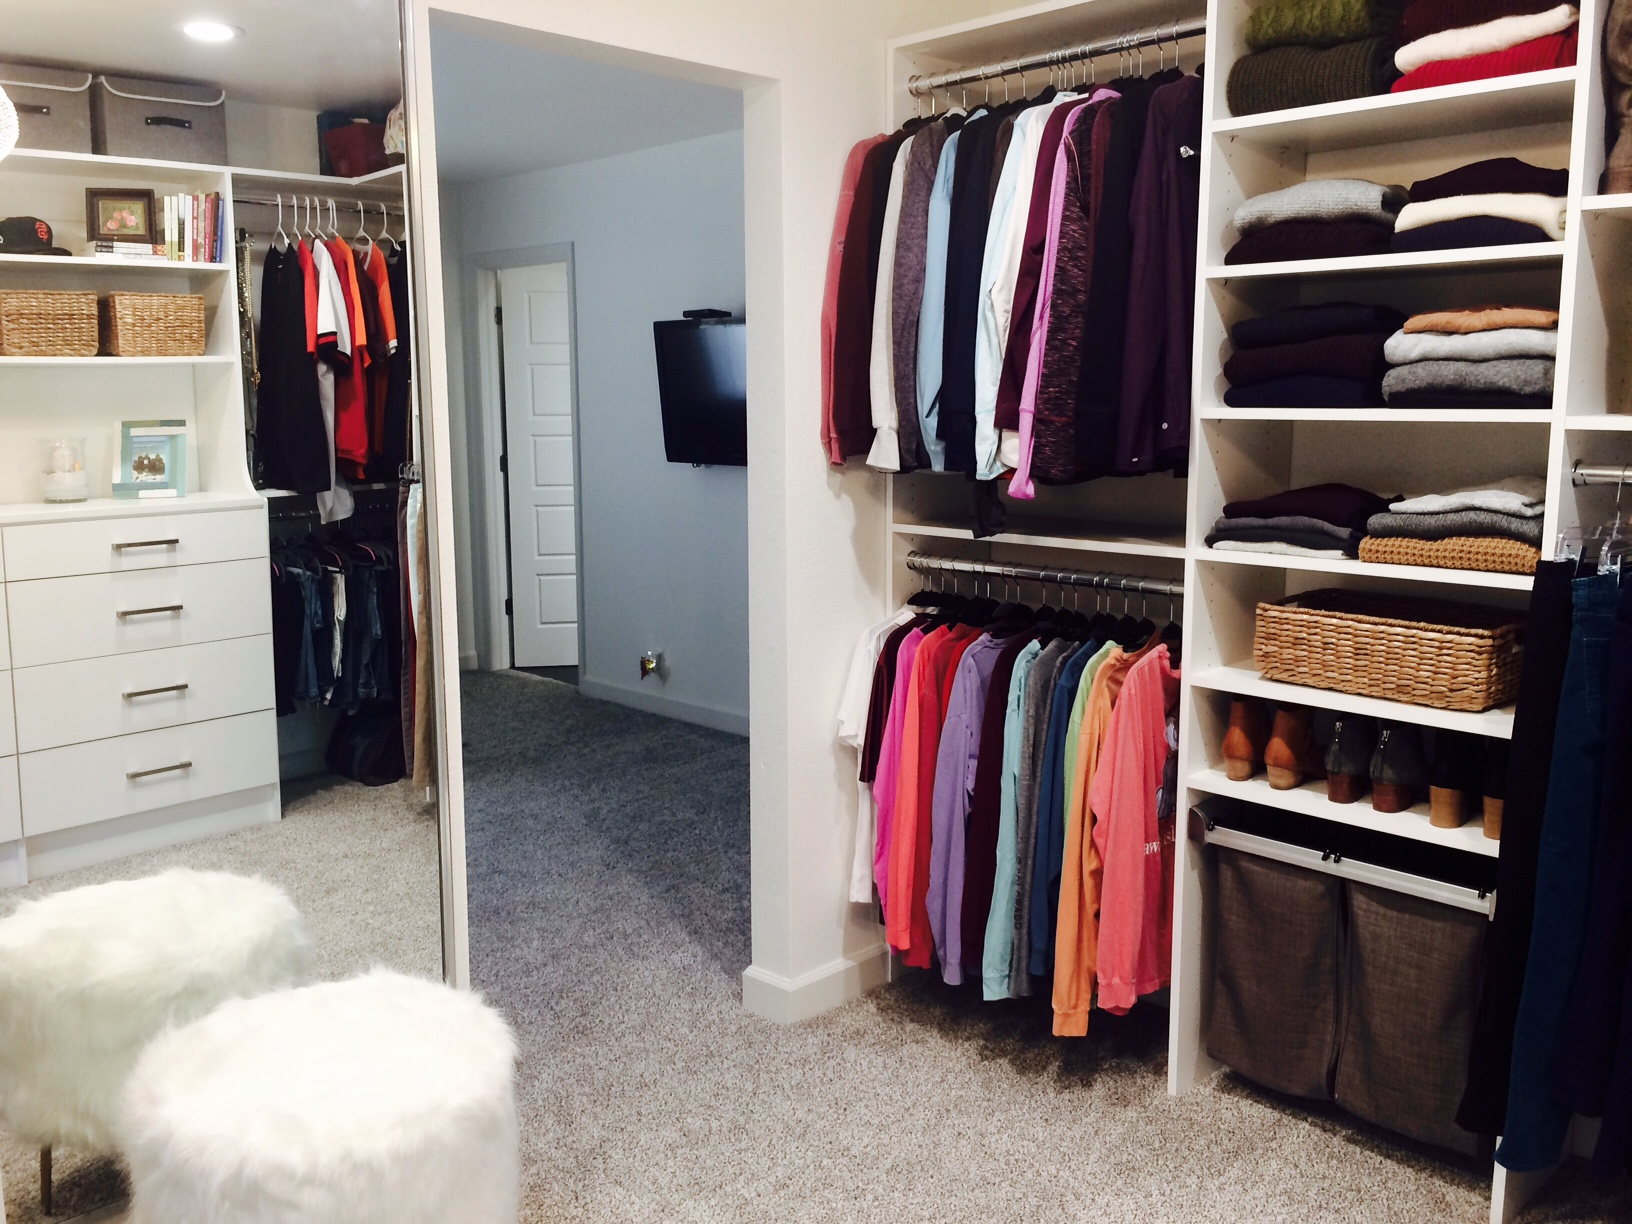 A full length mirror and furry vanity stool turn up the glamour in this bedroom closet conversion by Closets of Tulsa.  Call now  for your FREE consultation and 3-D closet design:  918.609.0214